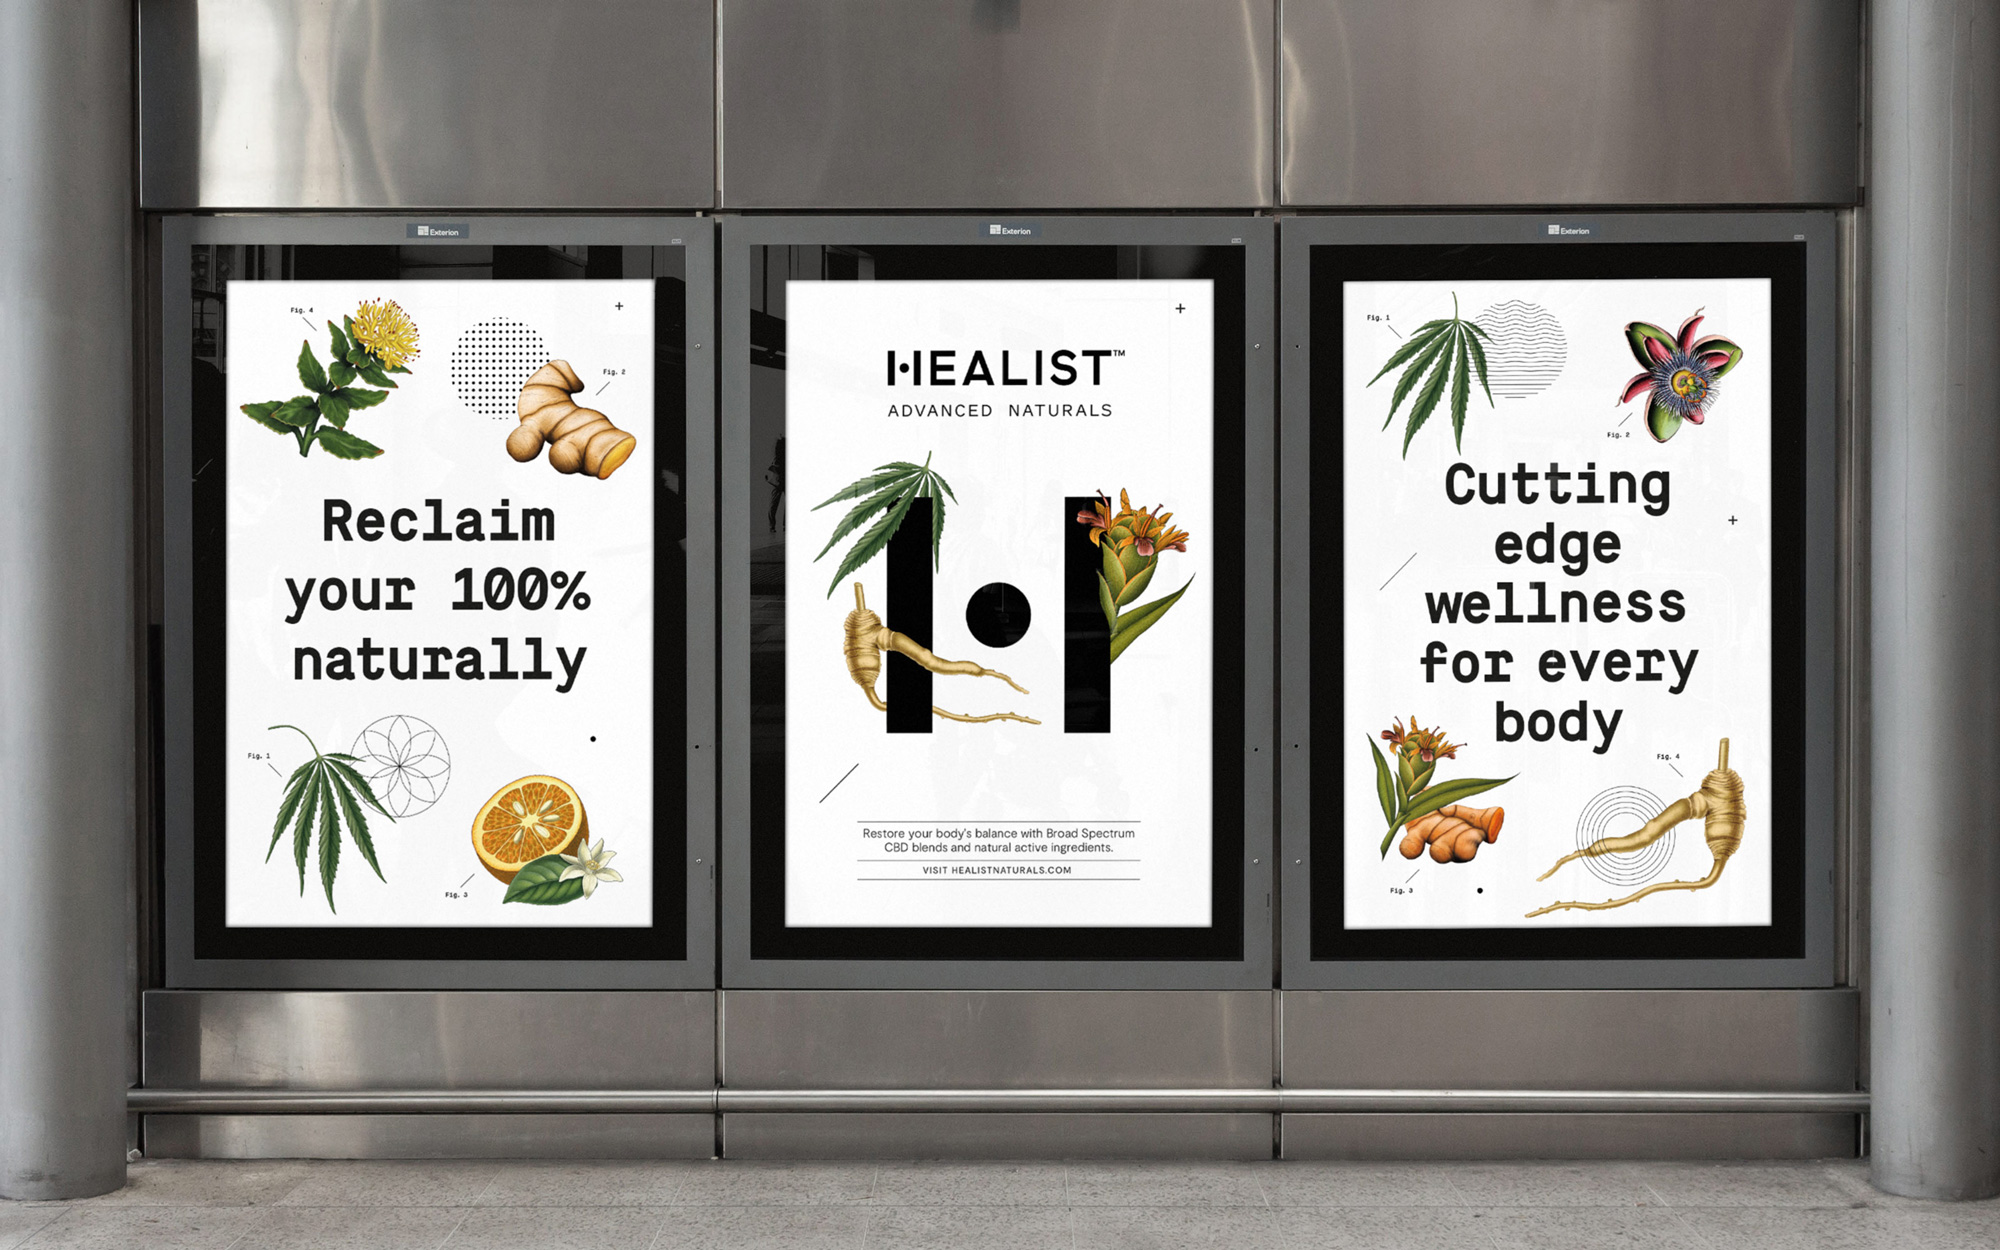 New Logo, Identity, and Packaging for Healist Naturals by Robot Food